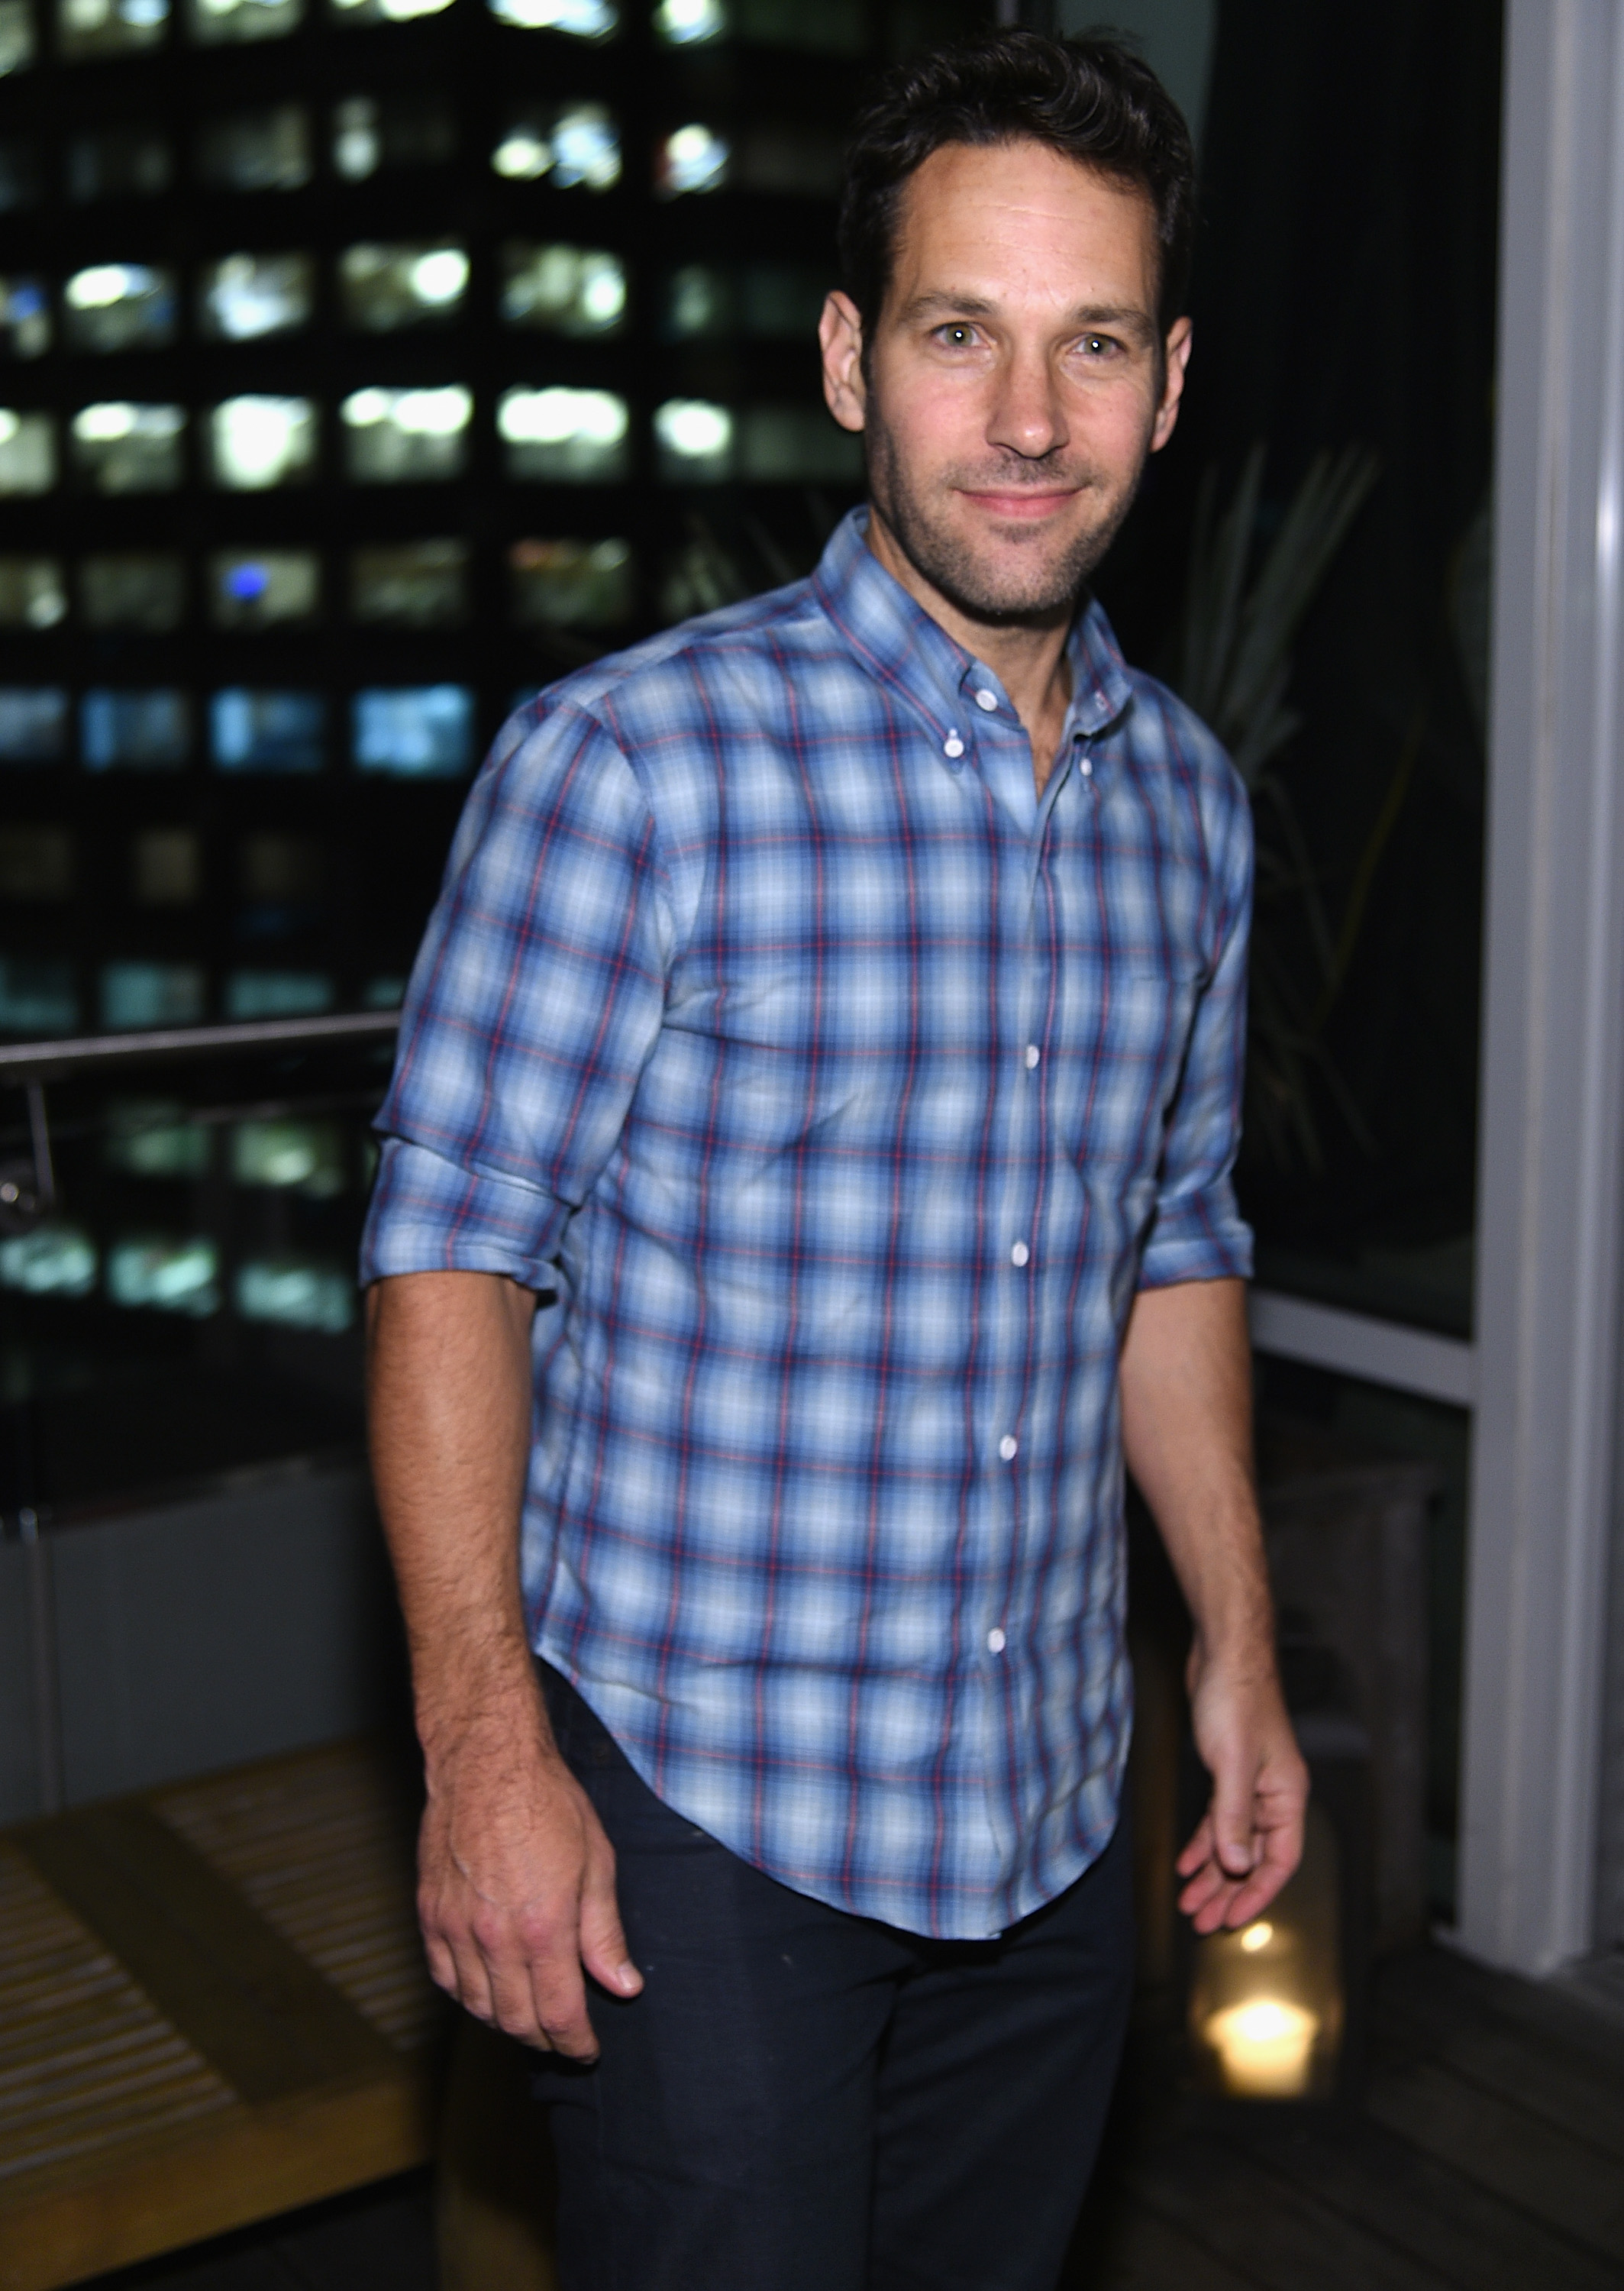 Paul Rudd at Marvel's  Guardians of the Galaxy  screening after party in New York City on Jul. 29, 2014.